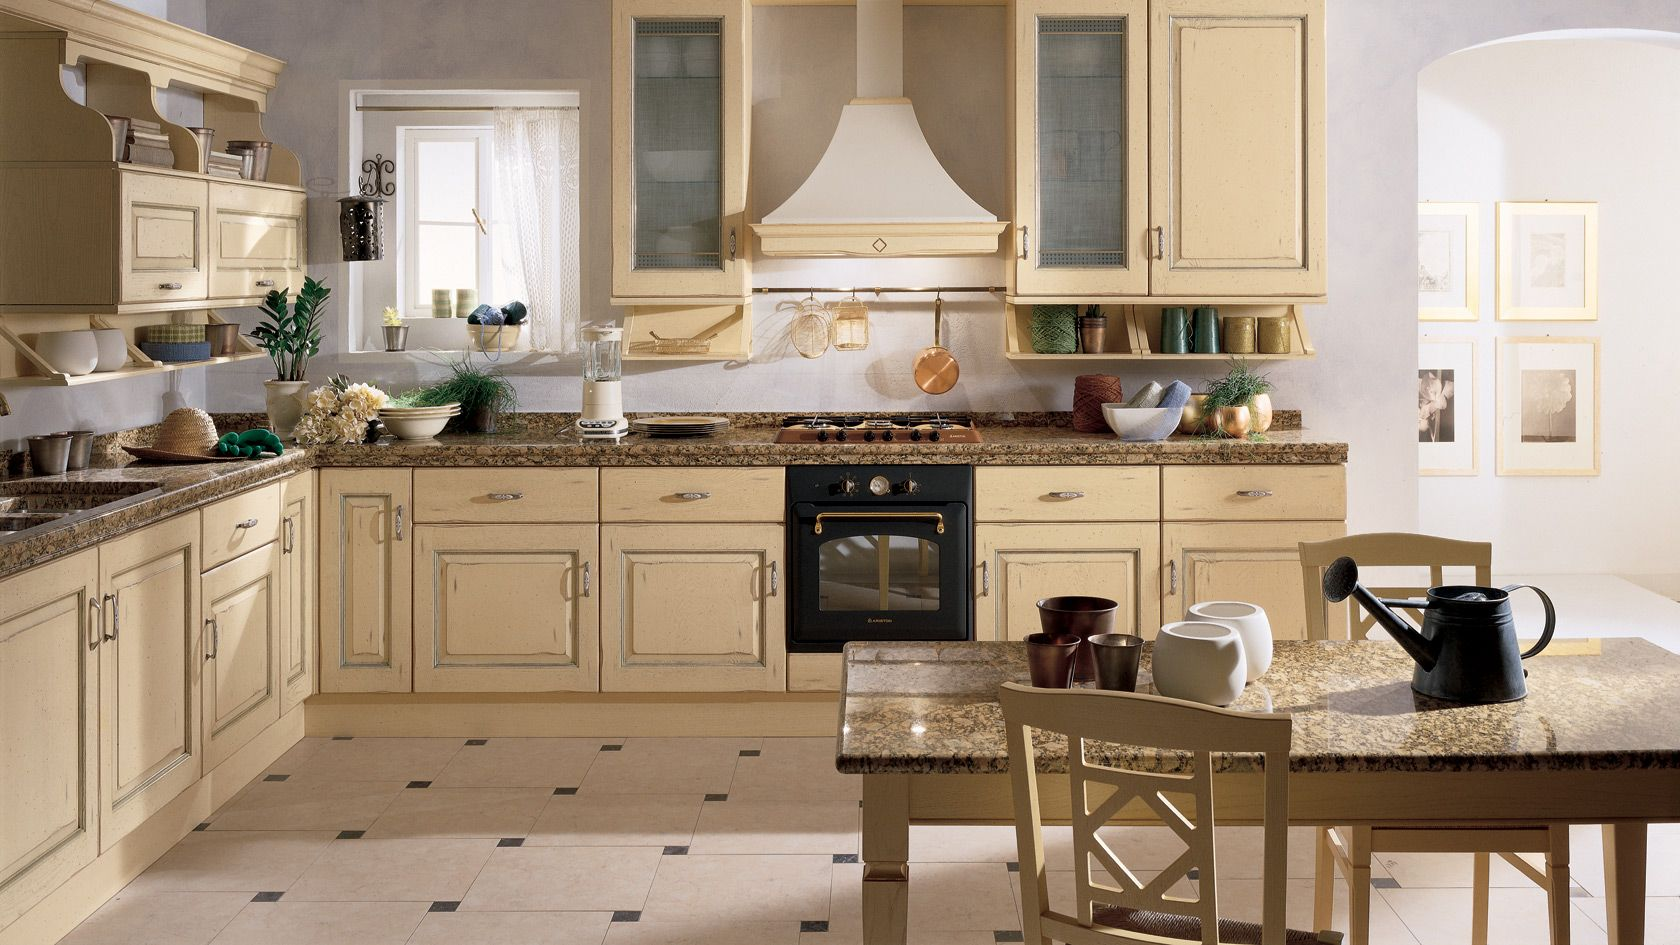 Kitchen Belvedere Scavolini | Palmerston Kitchen | Pinterest ...